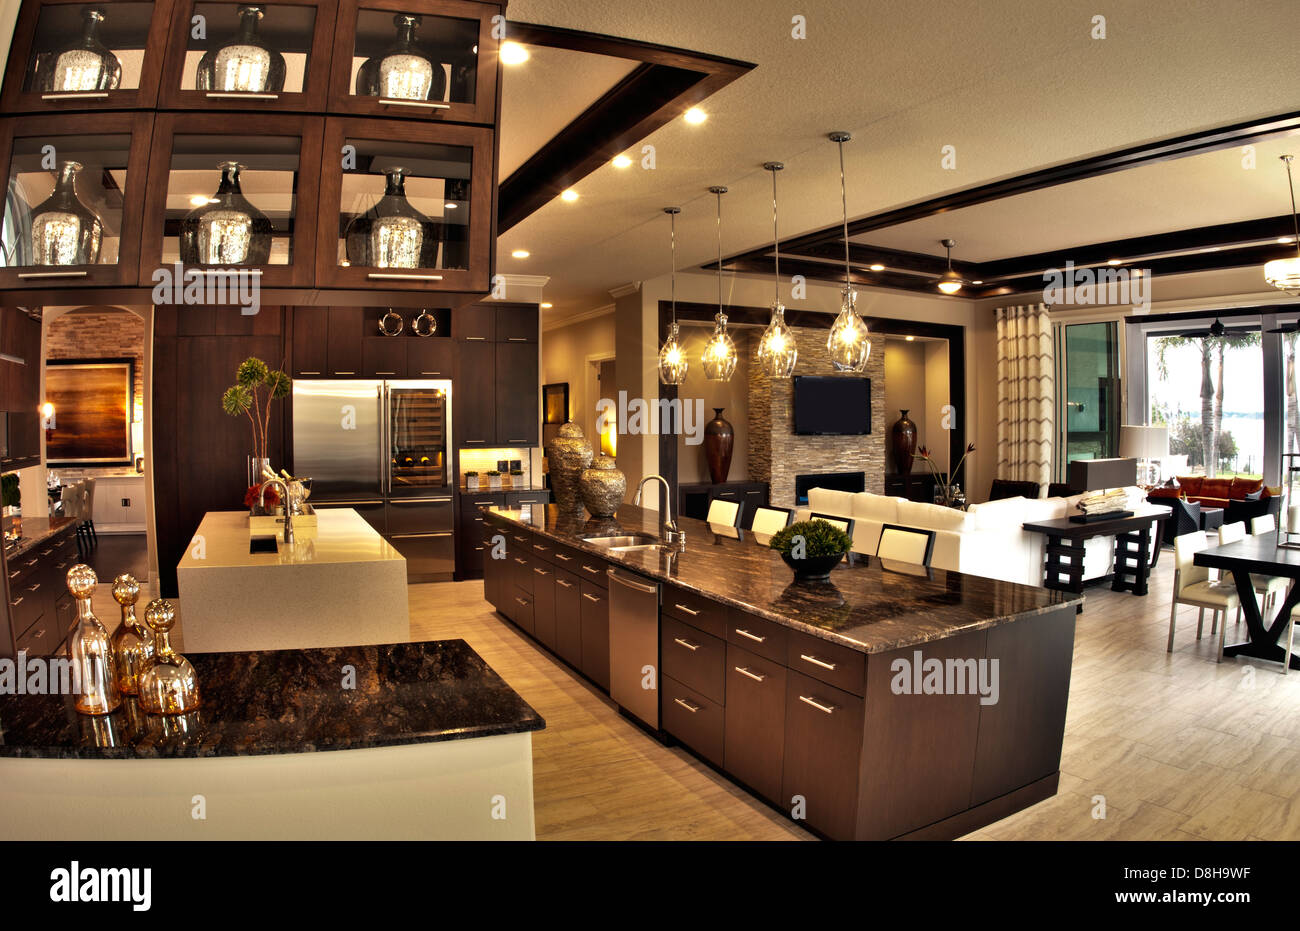 Luxury Home Worth Several Million Dollars Modern Kitchen And Living Stock Photo Royalty Free